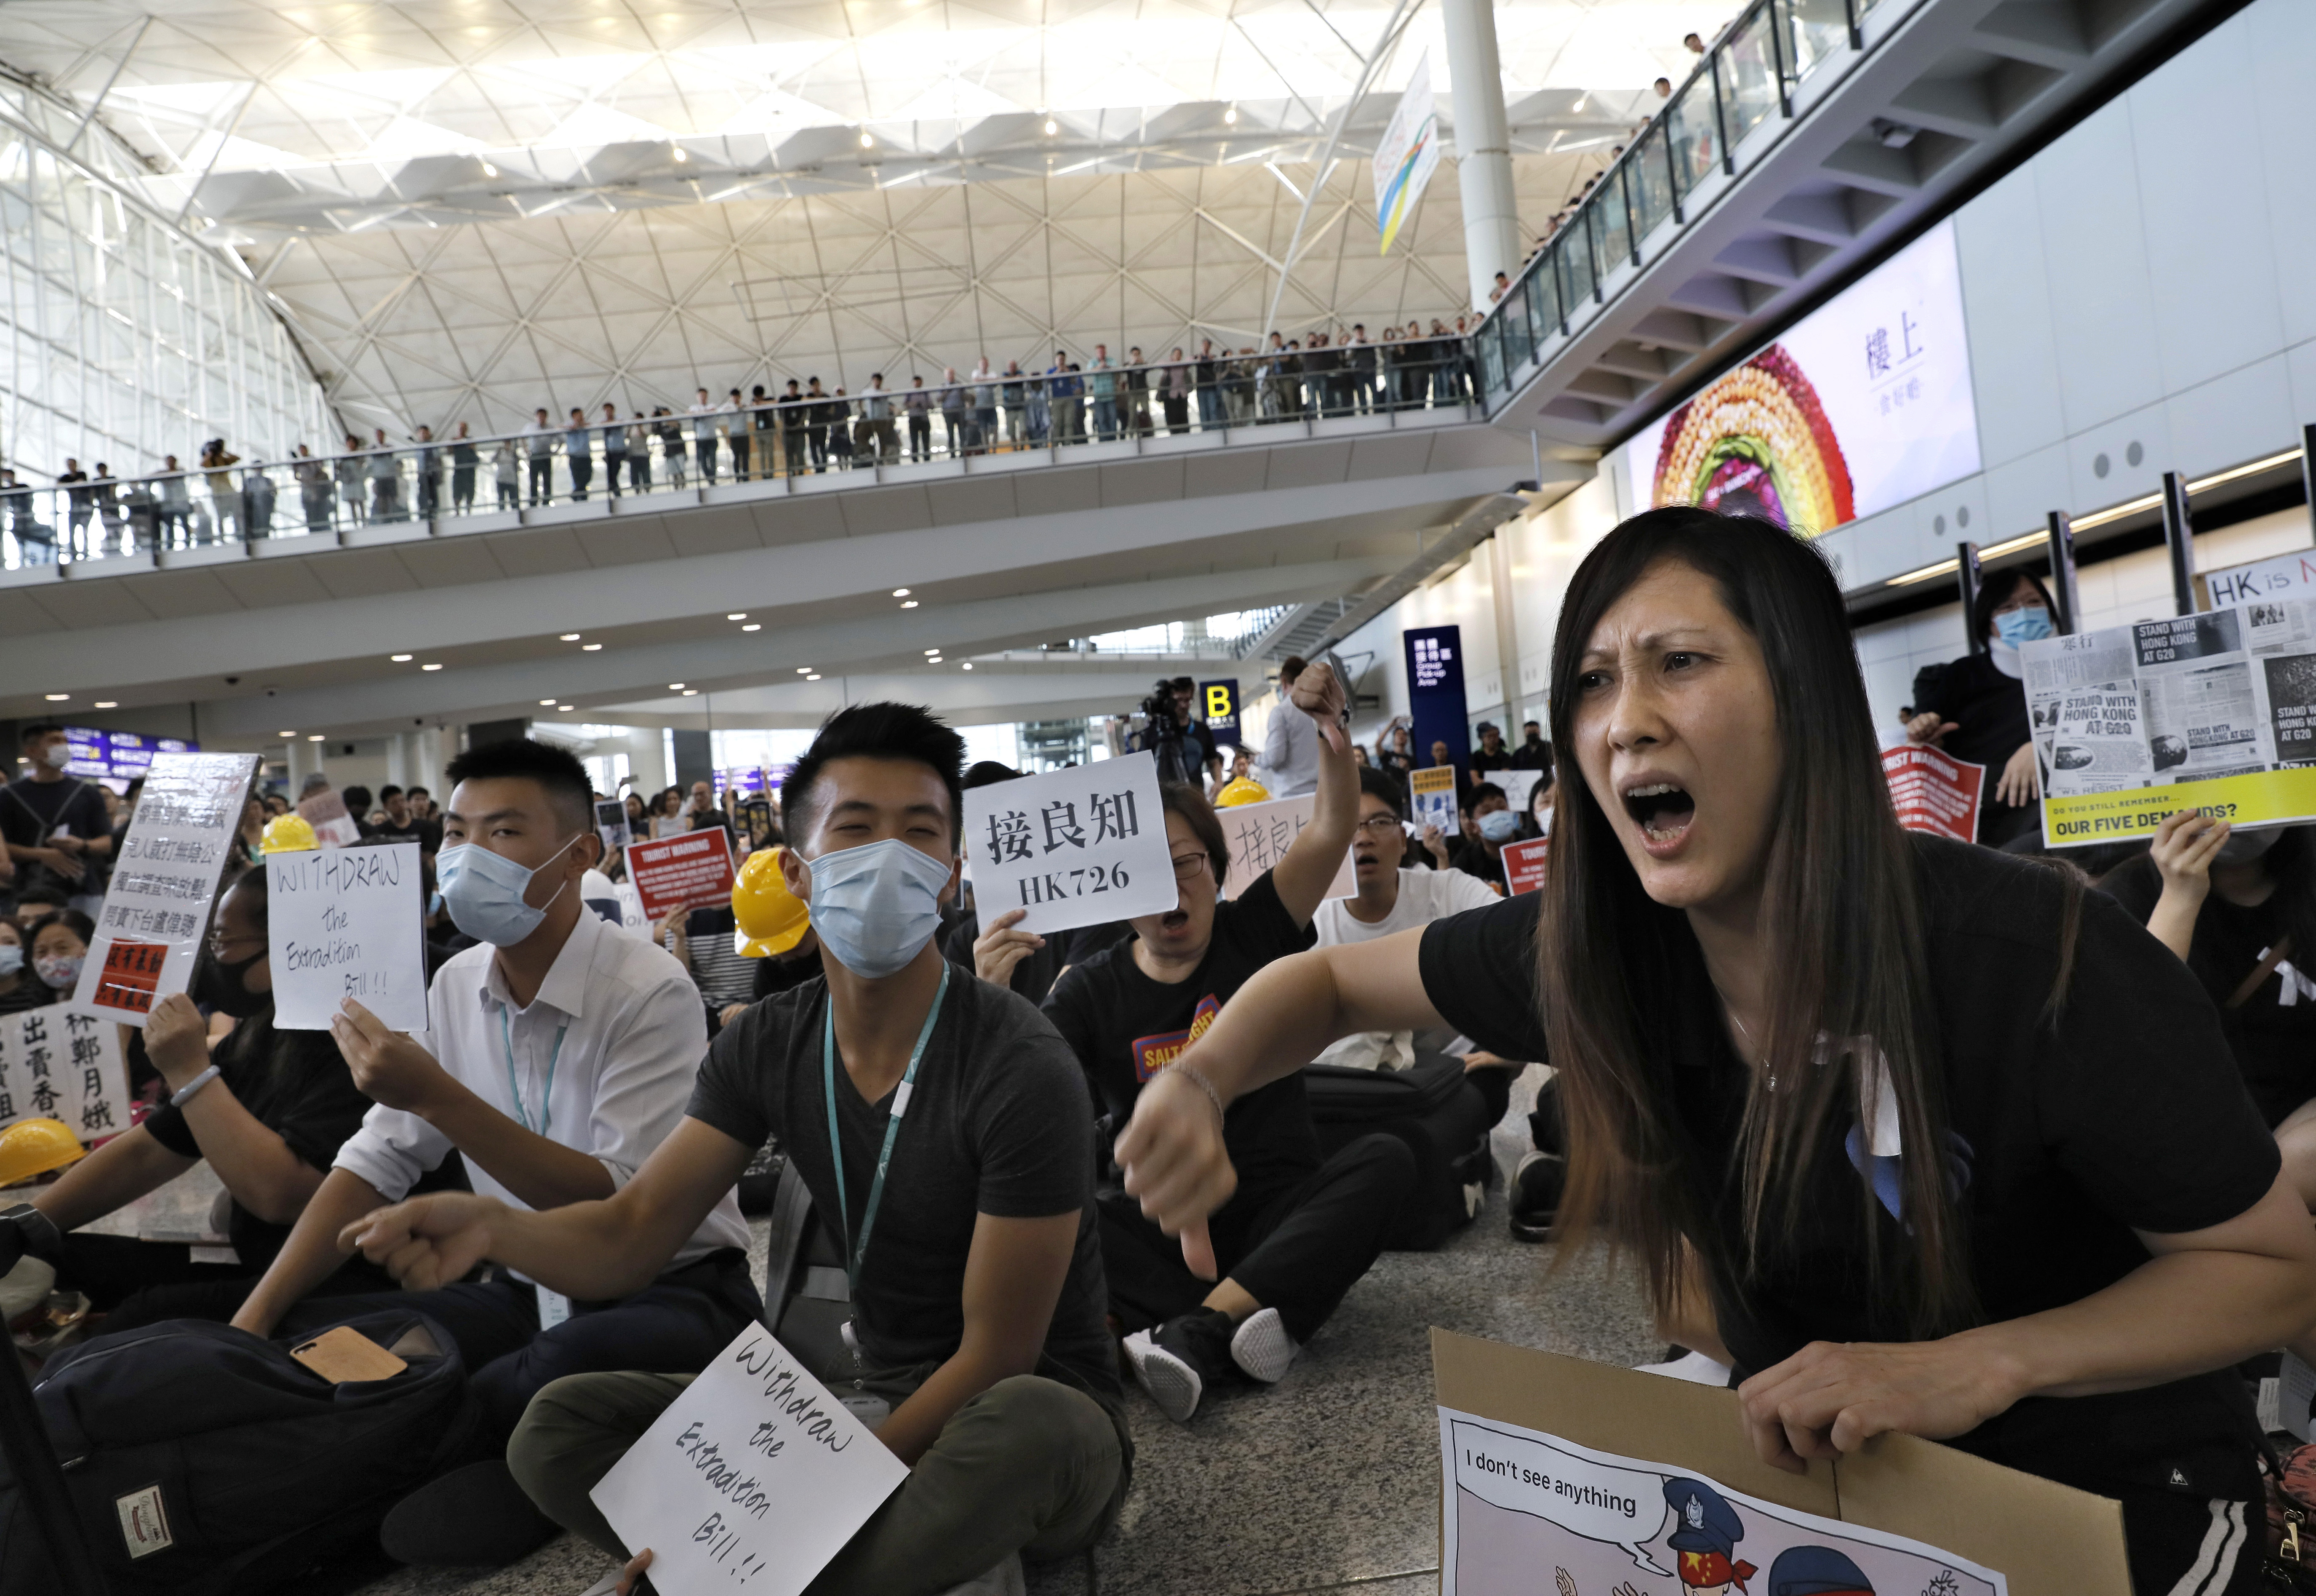 Hong Kong protesters take their cause to airport arrivals